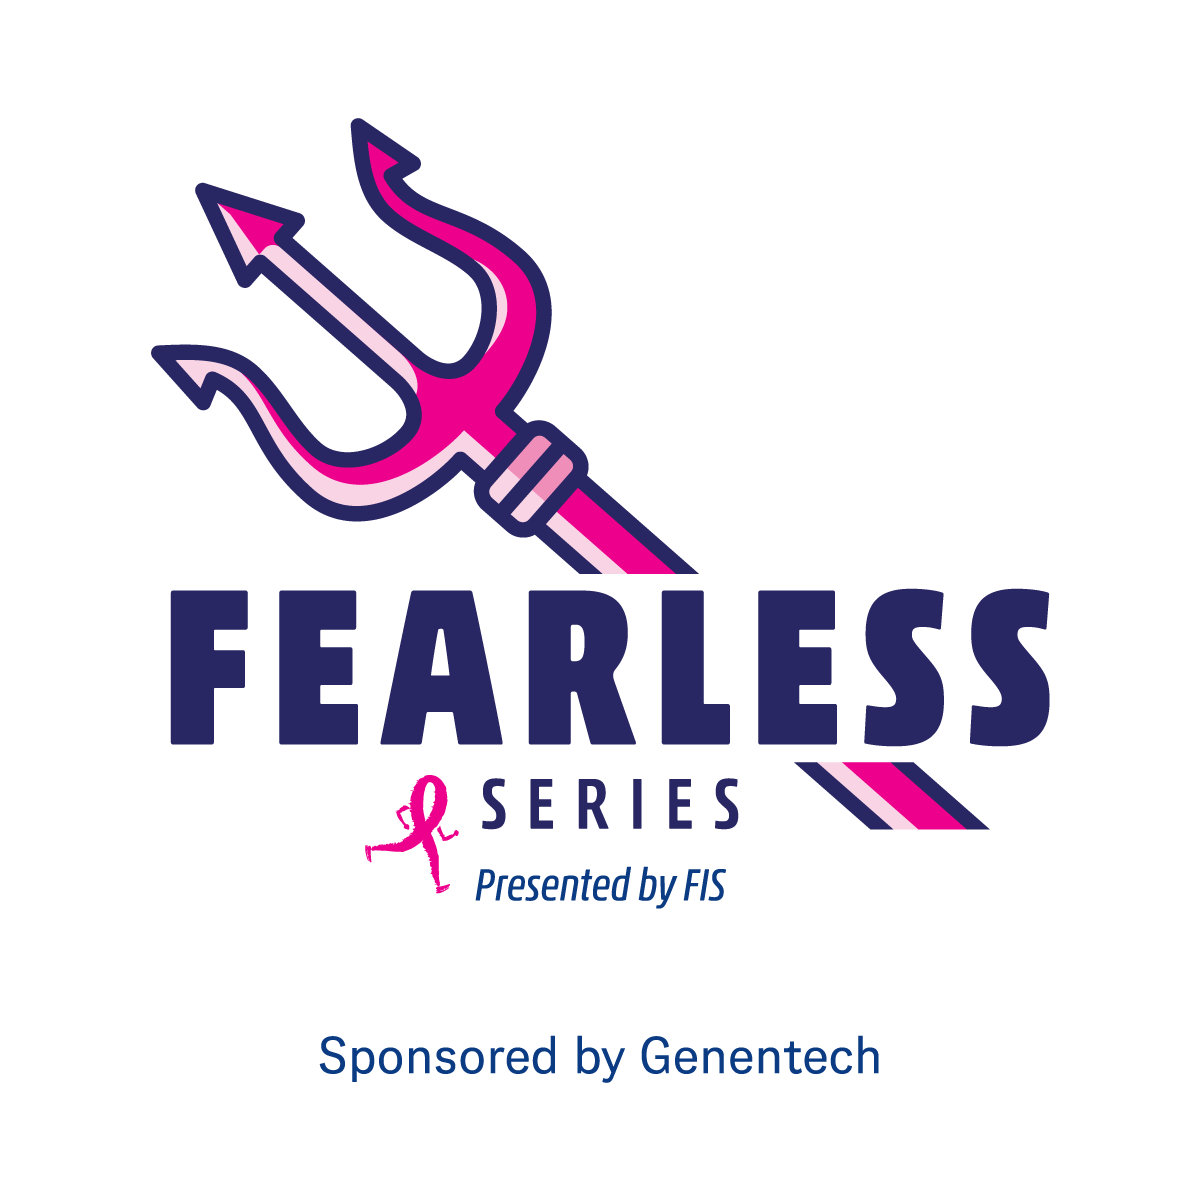 Genentech DONNA Fearless Series presented by FIS